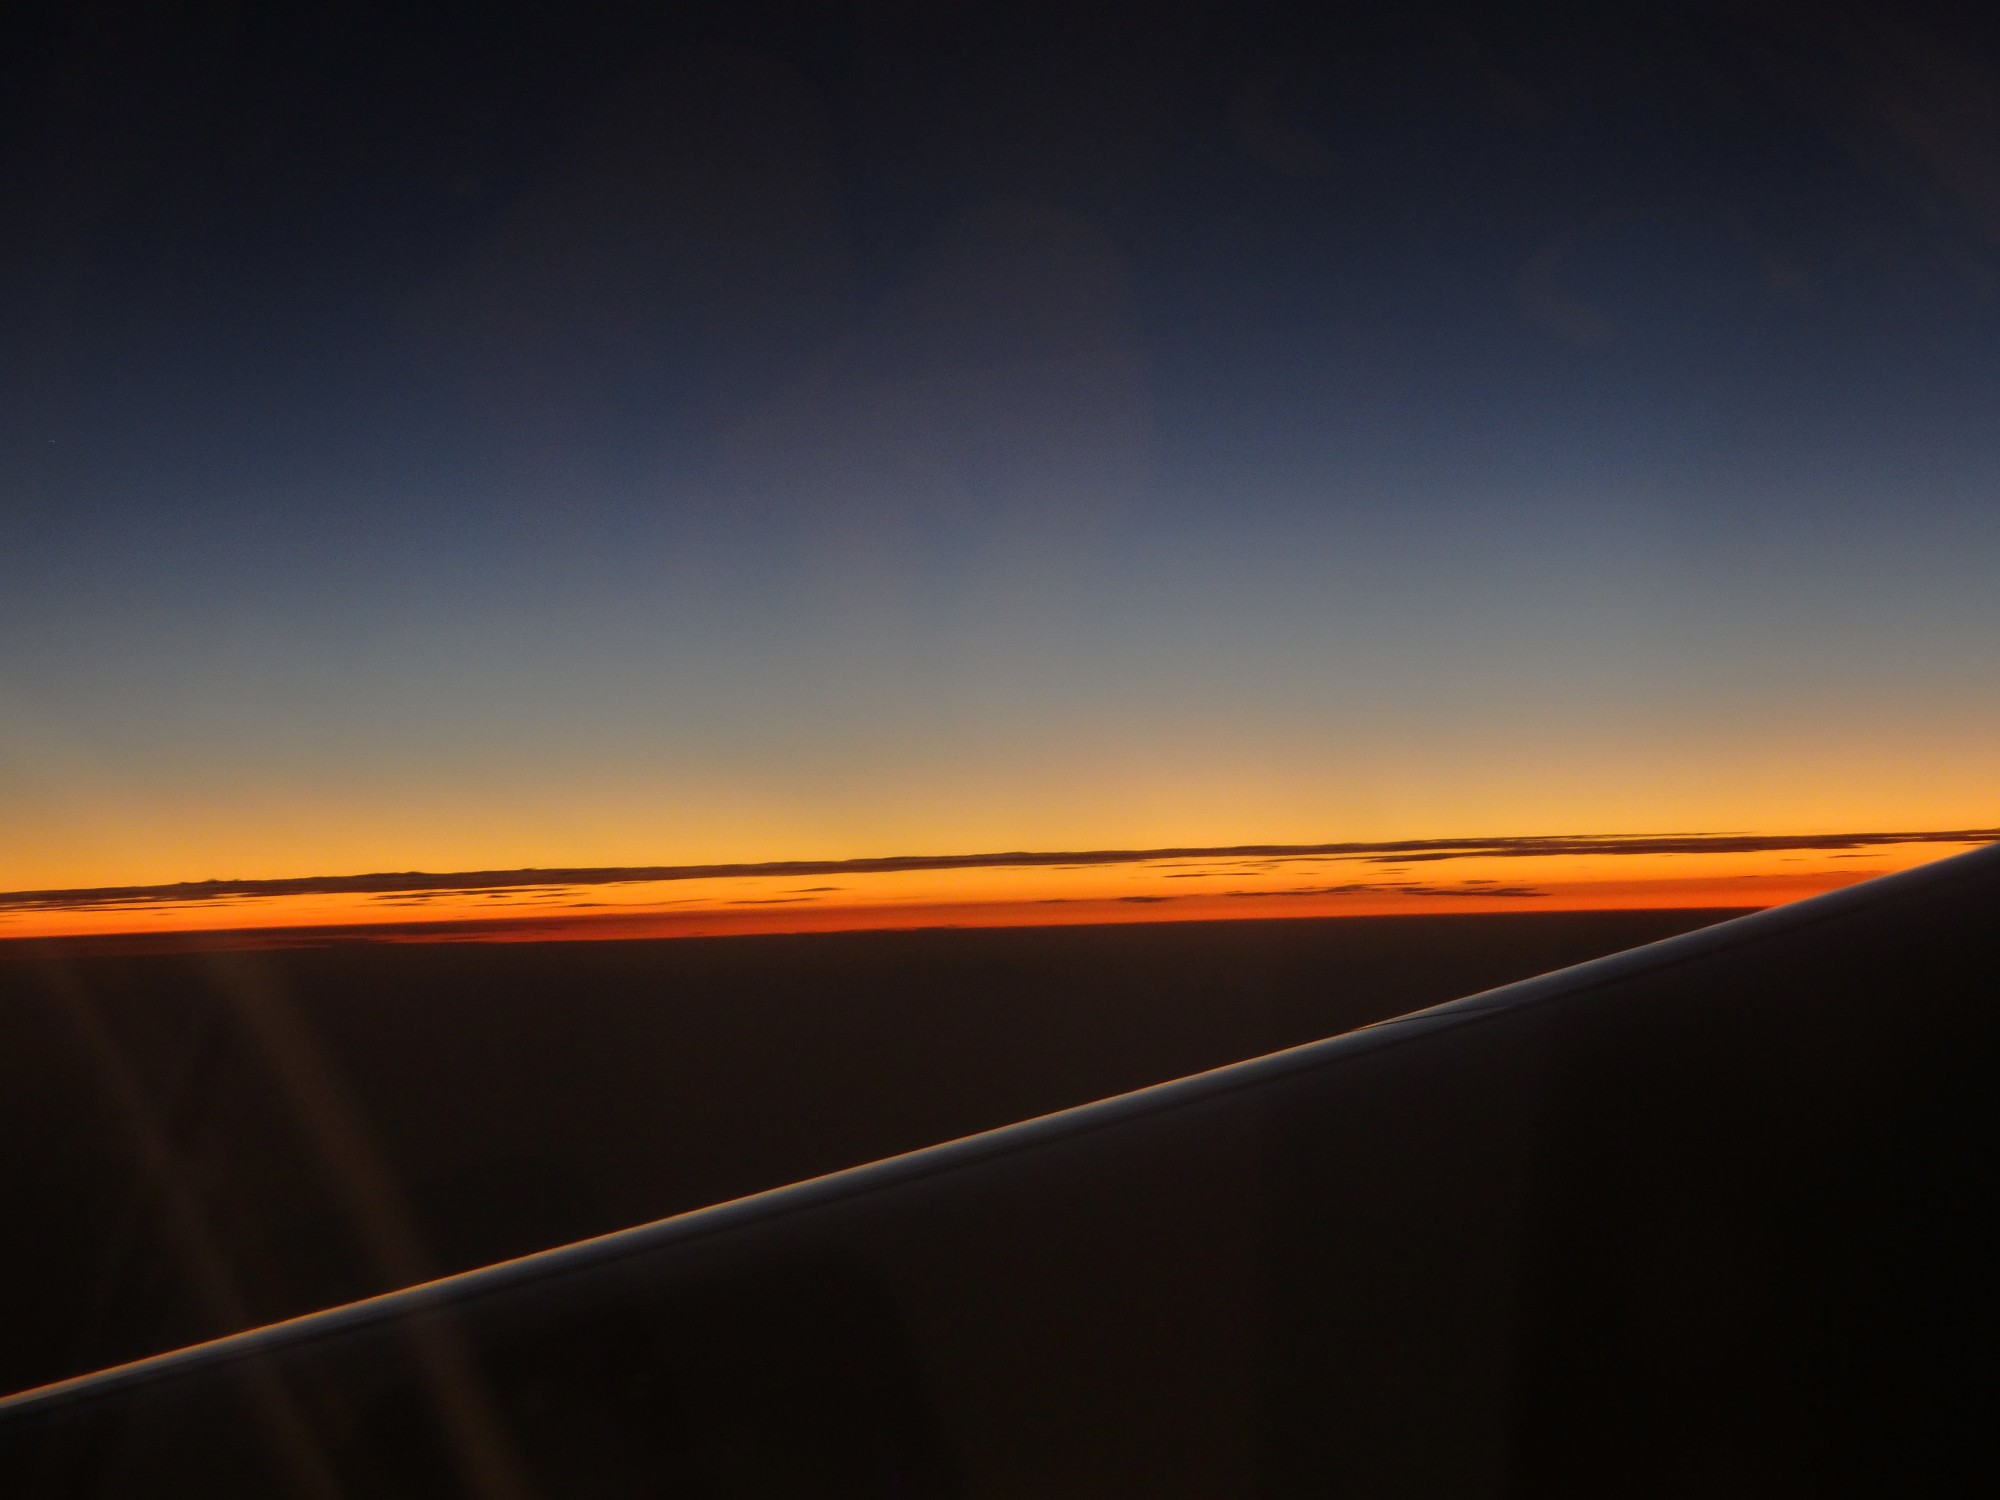 sunset as a pilot and passengers might see it from a plane